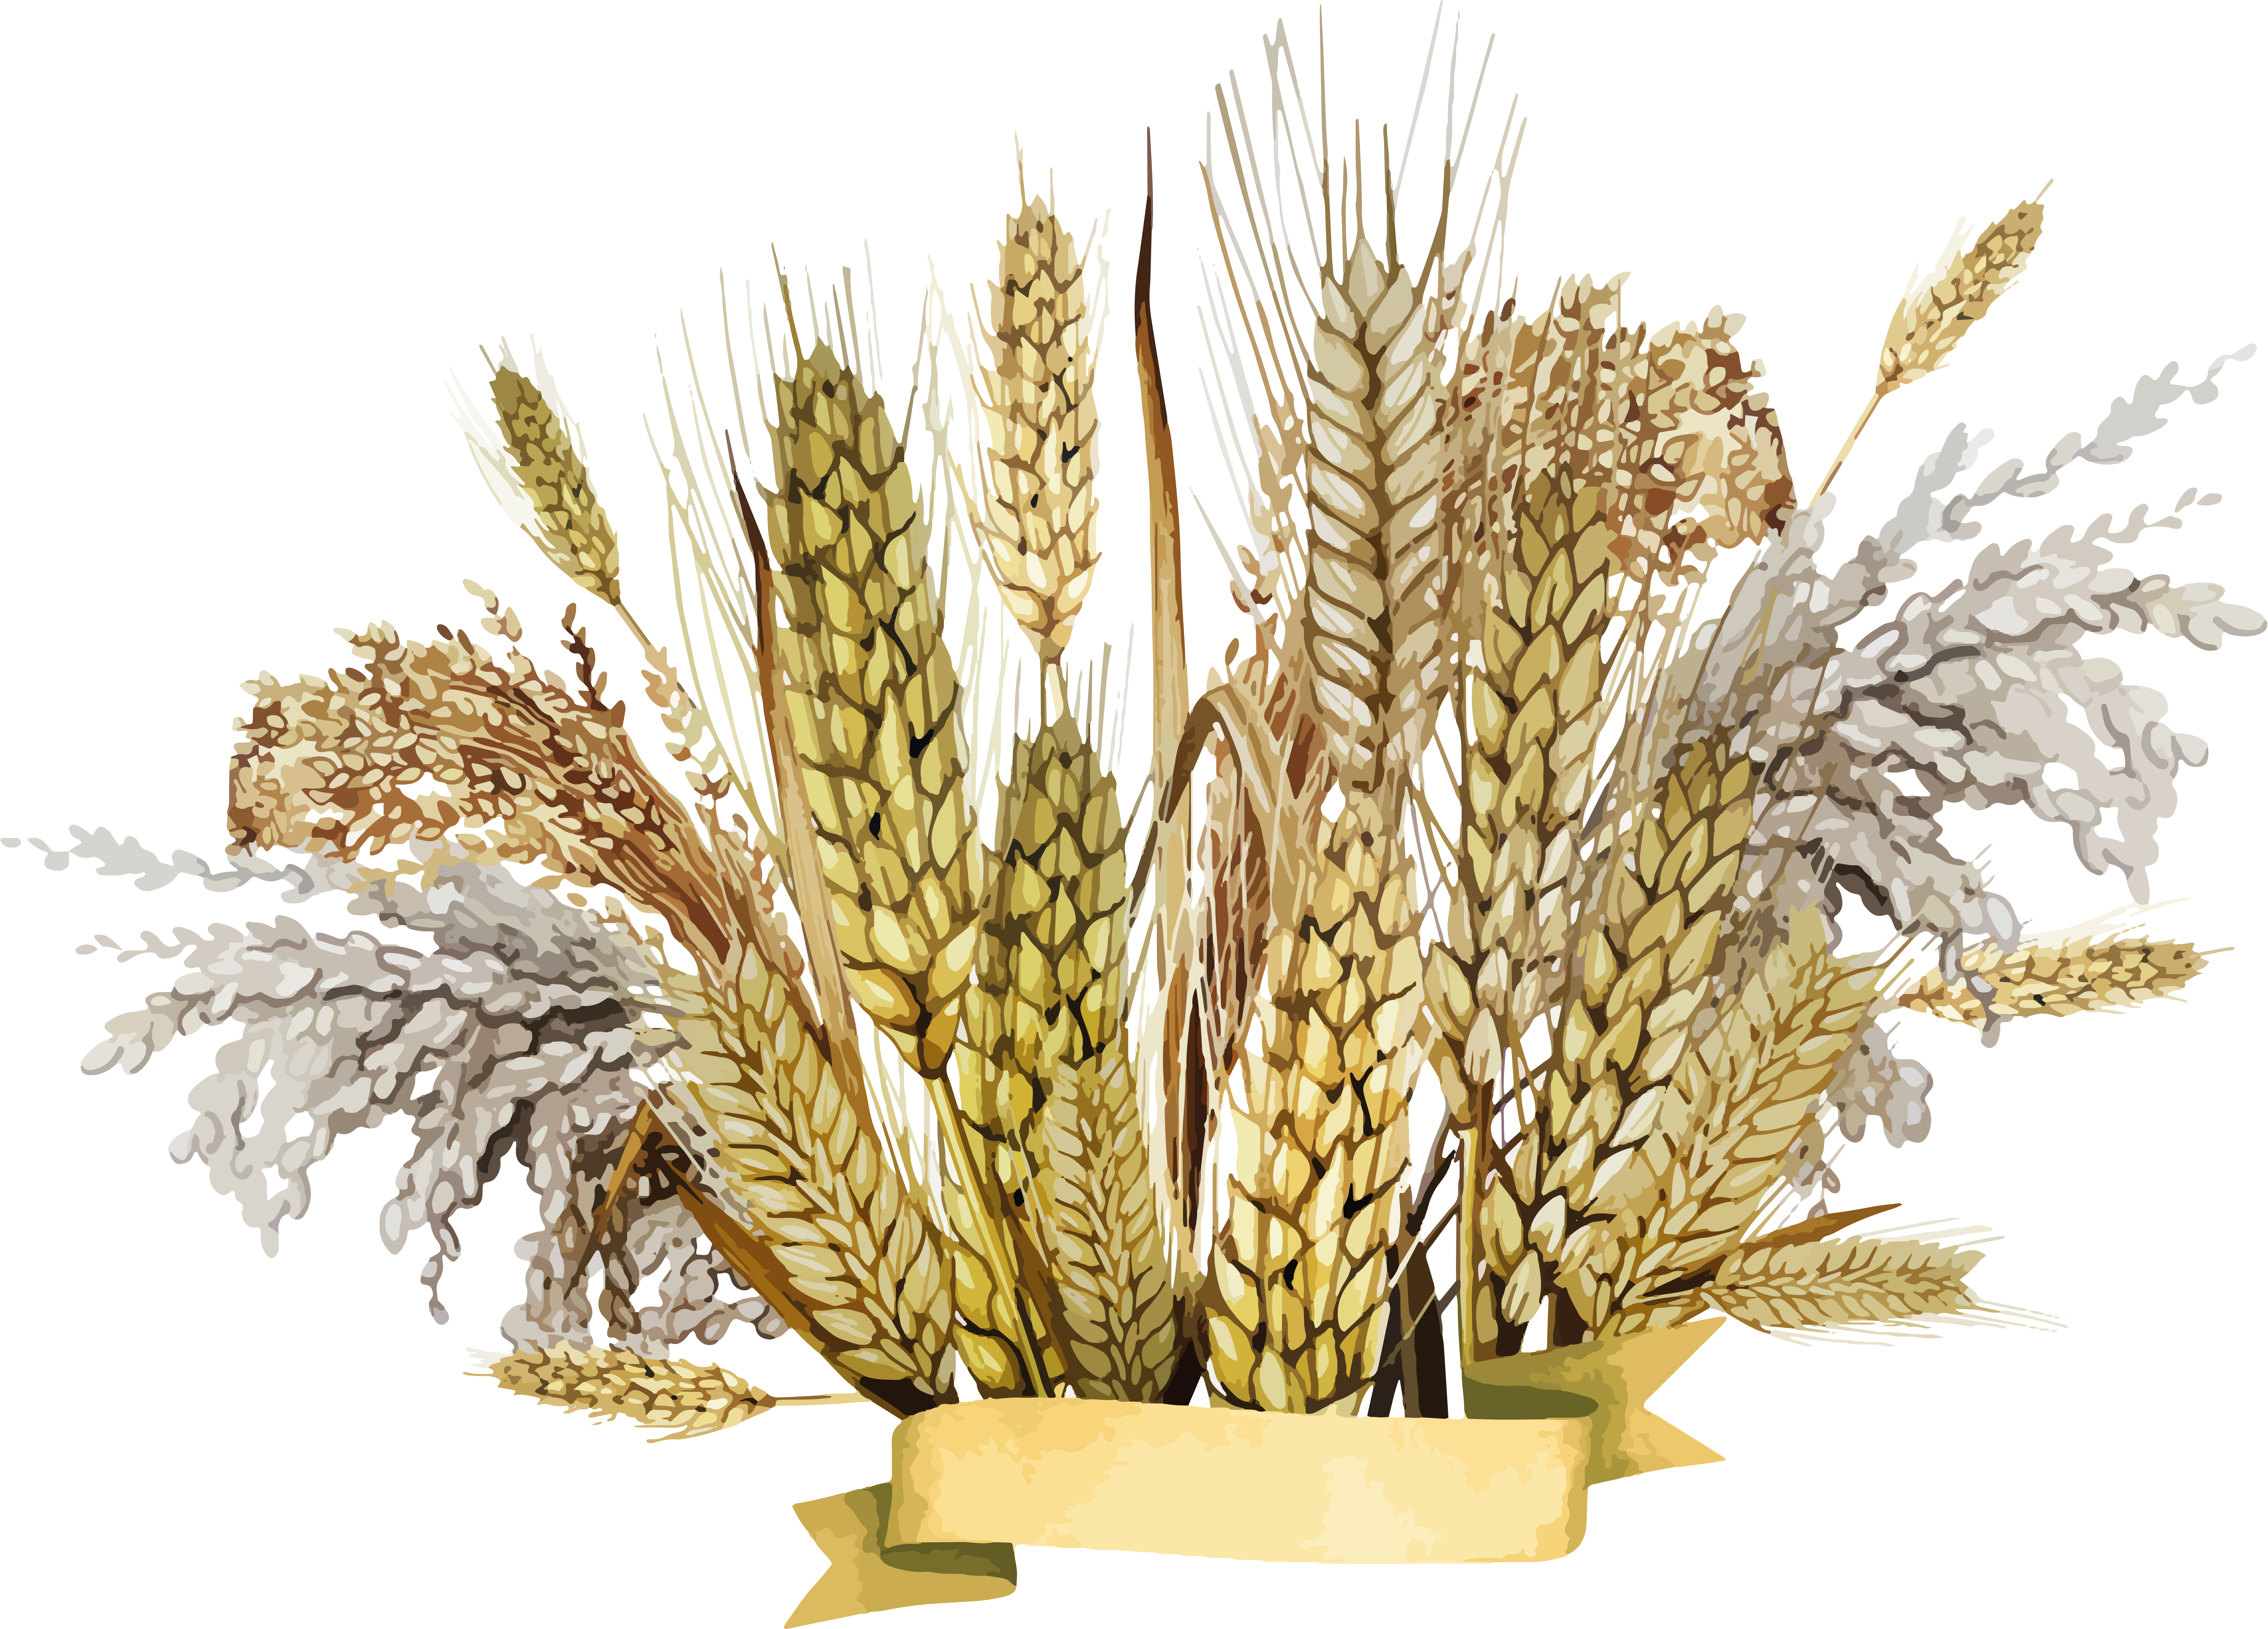 Wheat clipart barley. Png images free download